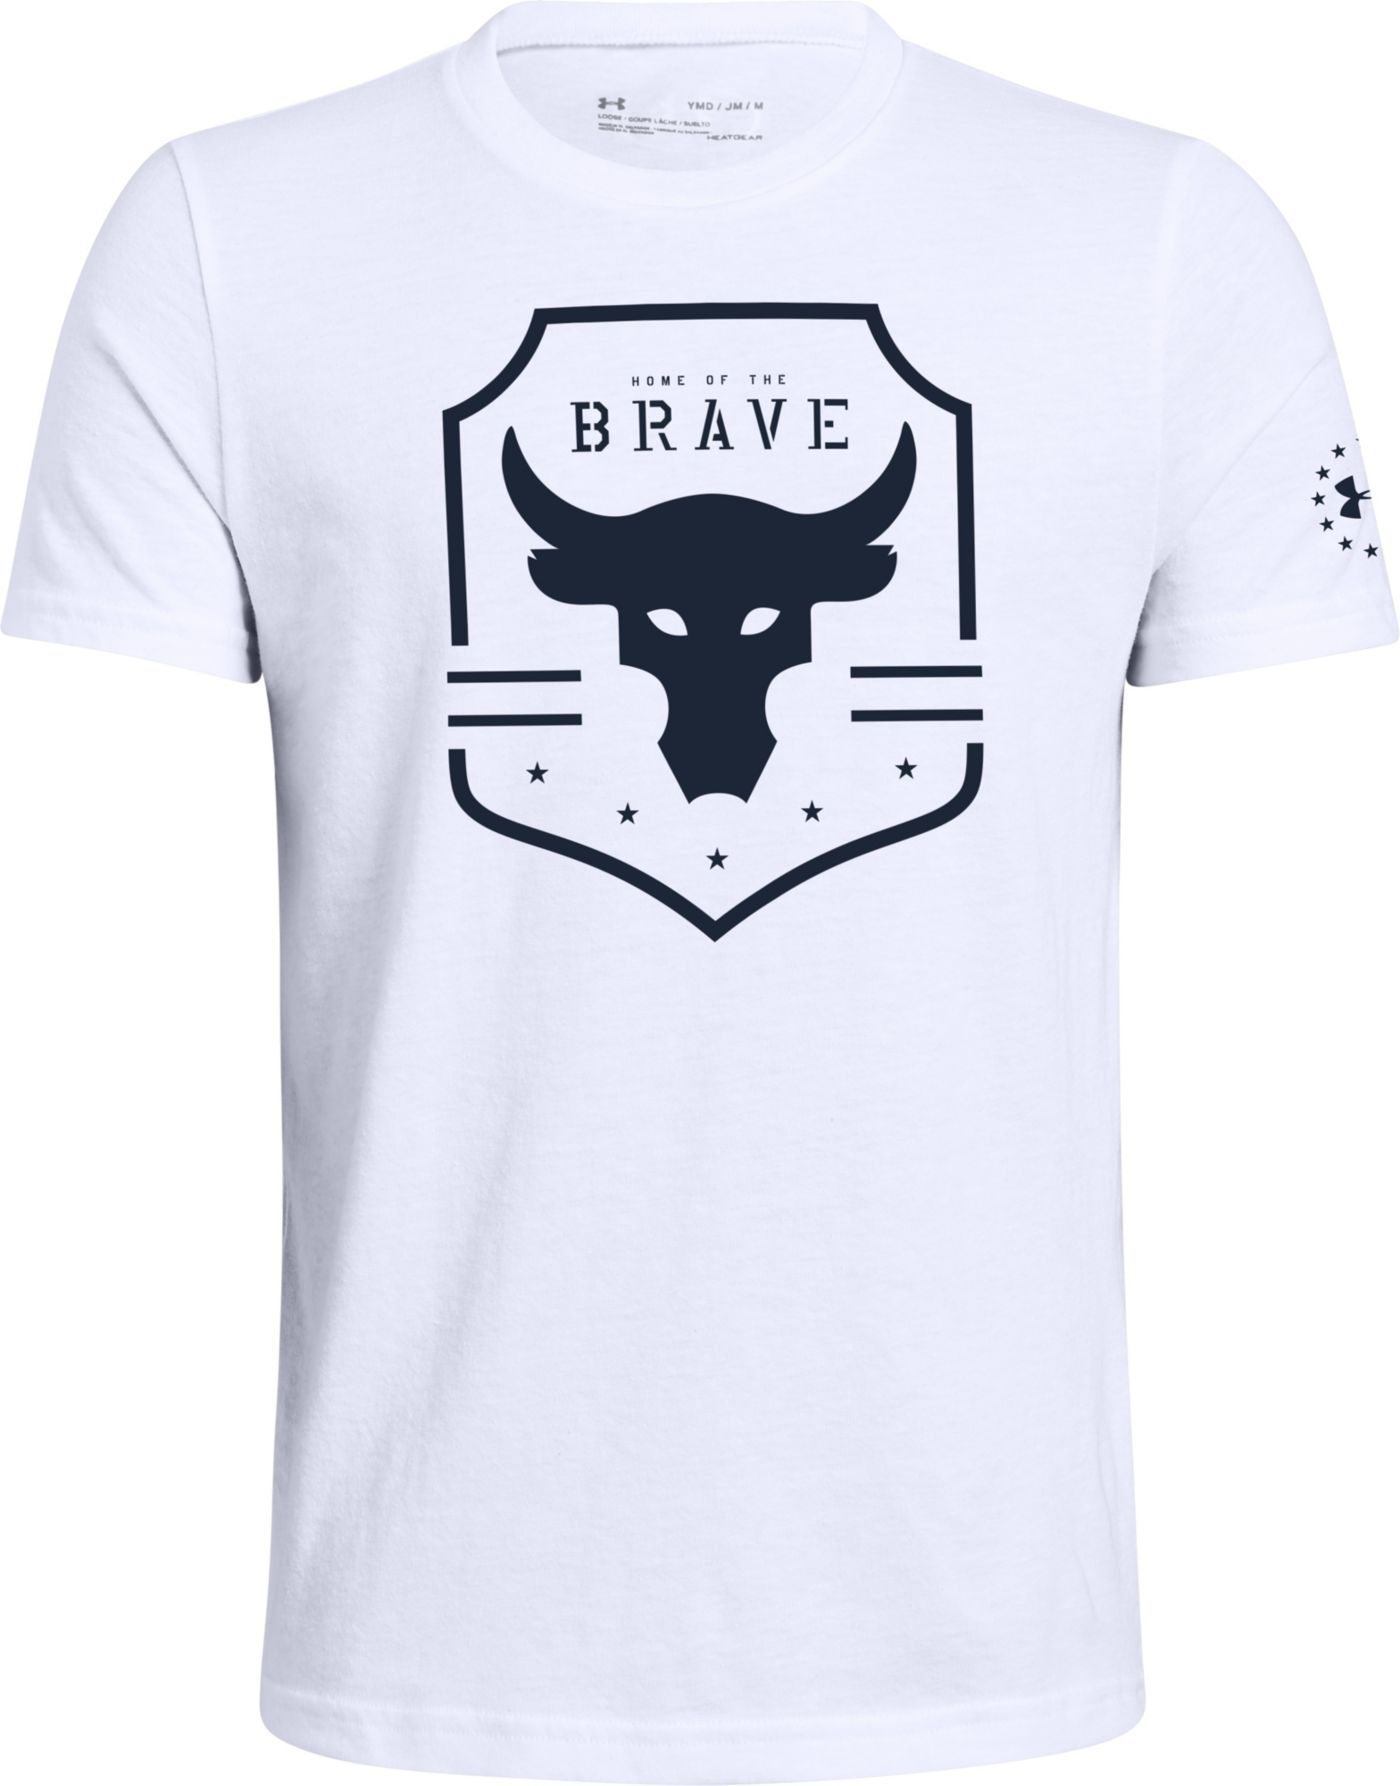 Under Armour Boy's Project Rock Brave T-Shirt